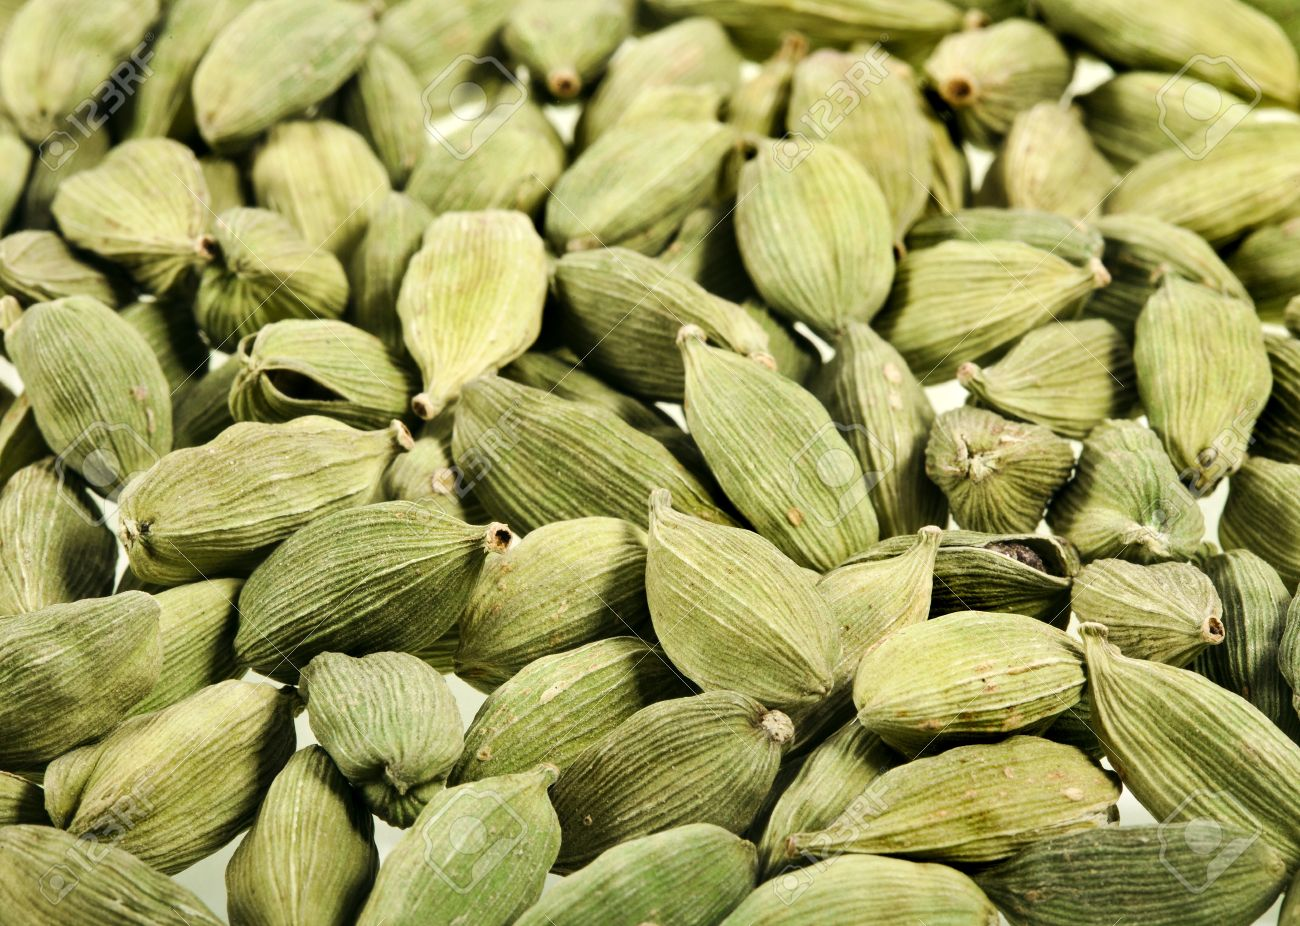 Green Cardamom Seeds Aromatic Spice Texture Background